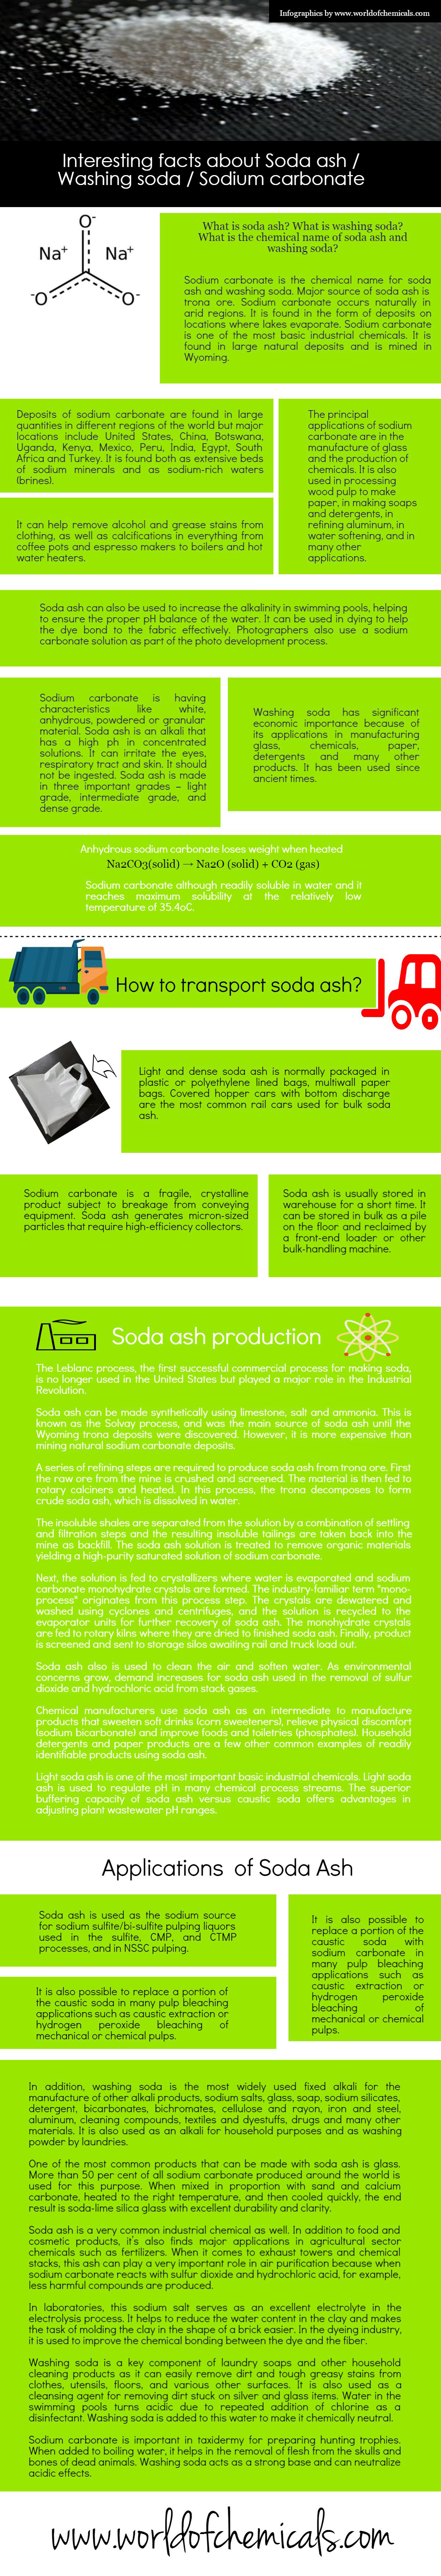 Interesting facts about soda ash washing soda sodium carbonate physics gamestrikefo Gallery